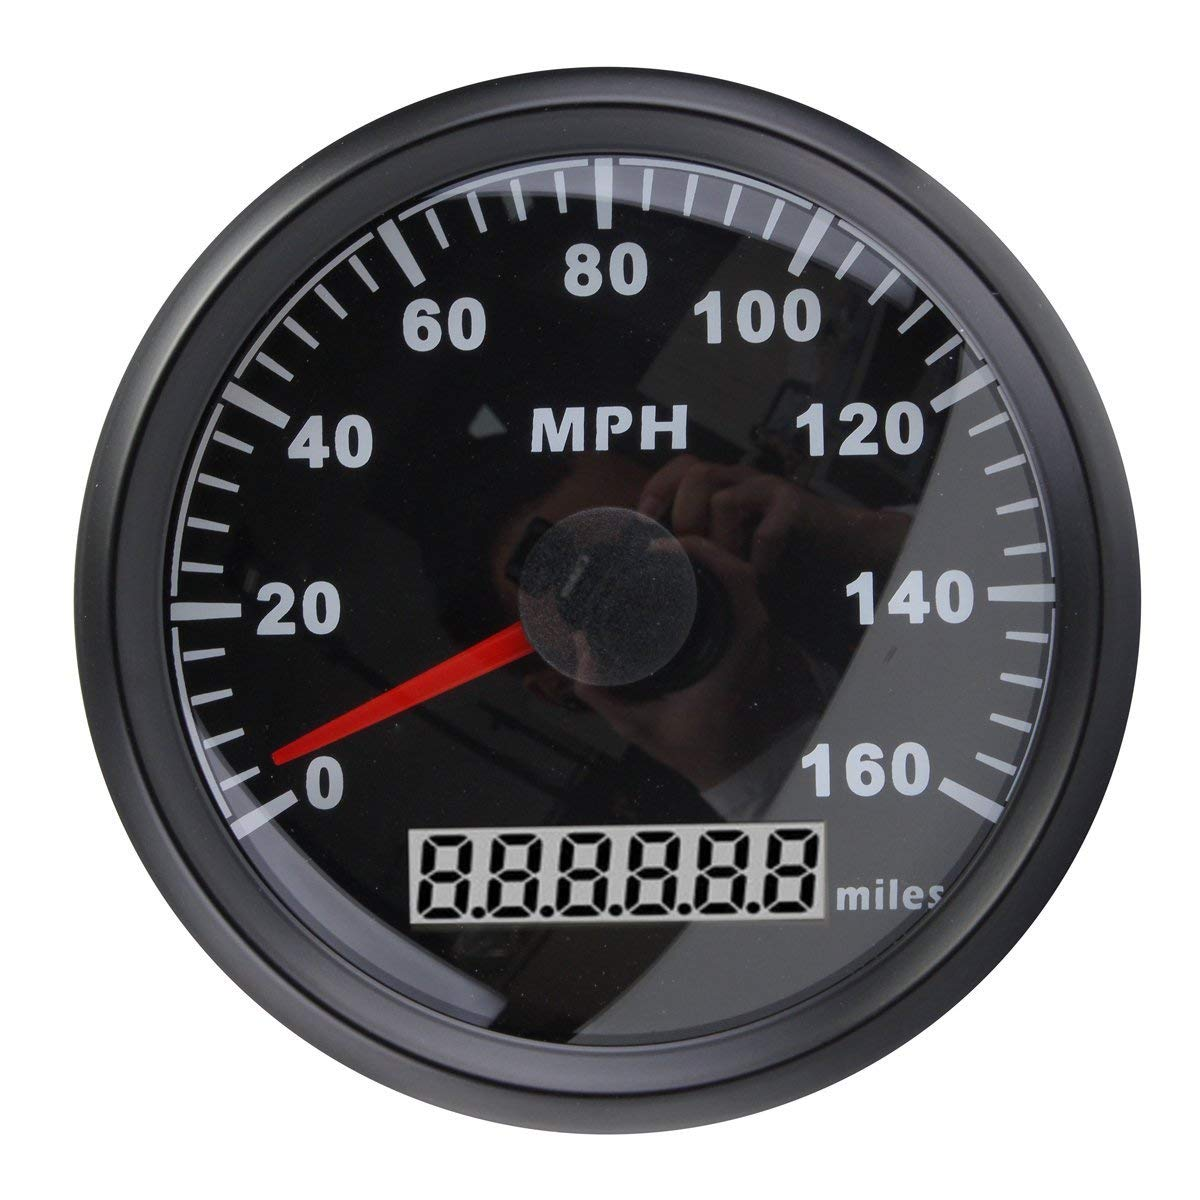 ELING Universal MPH GPS Speedometer Odometer 160MPH for Car Motorcycle Tractor Truck with Backlight 85mm 12V/24V by ELING